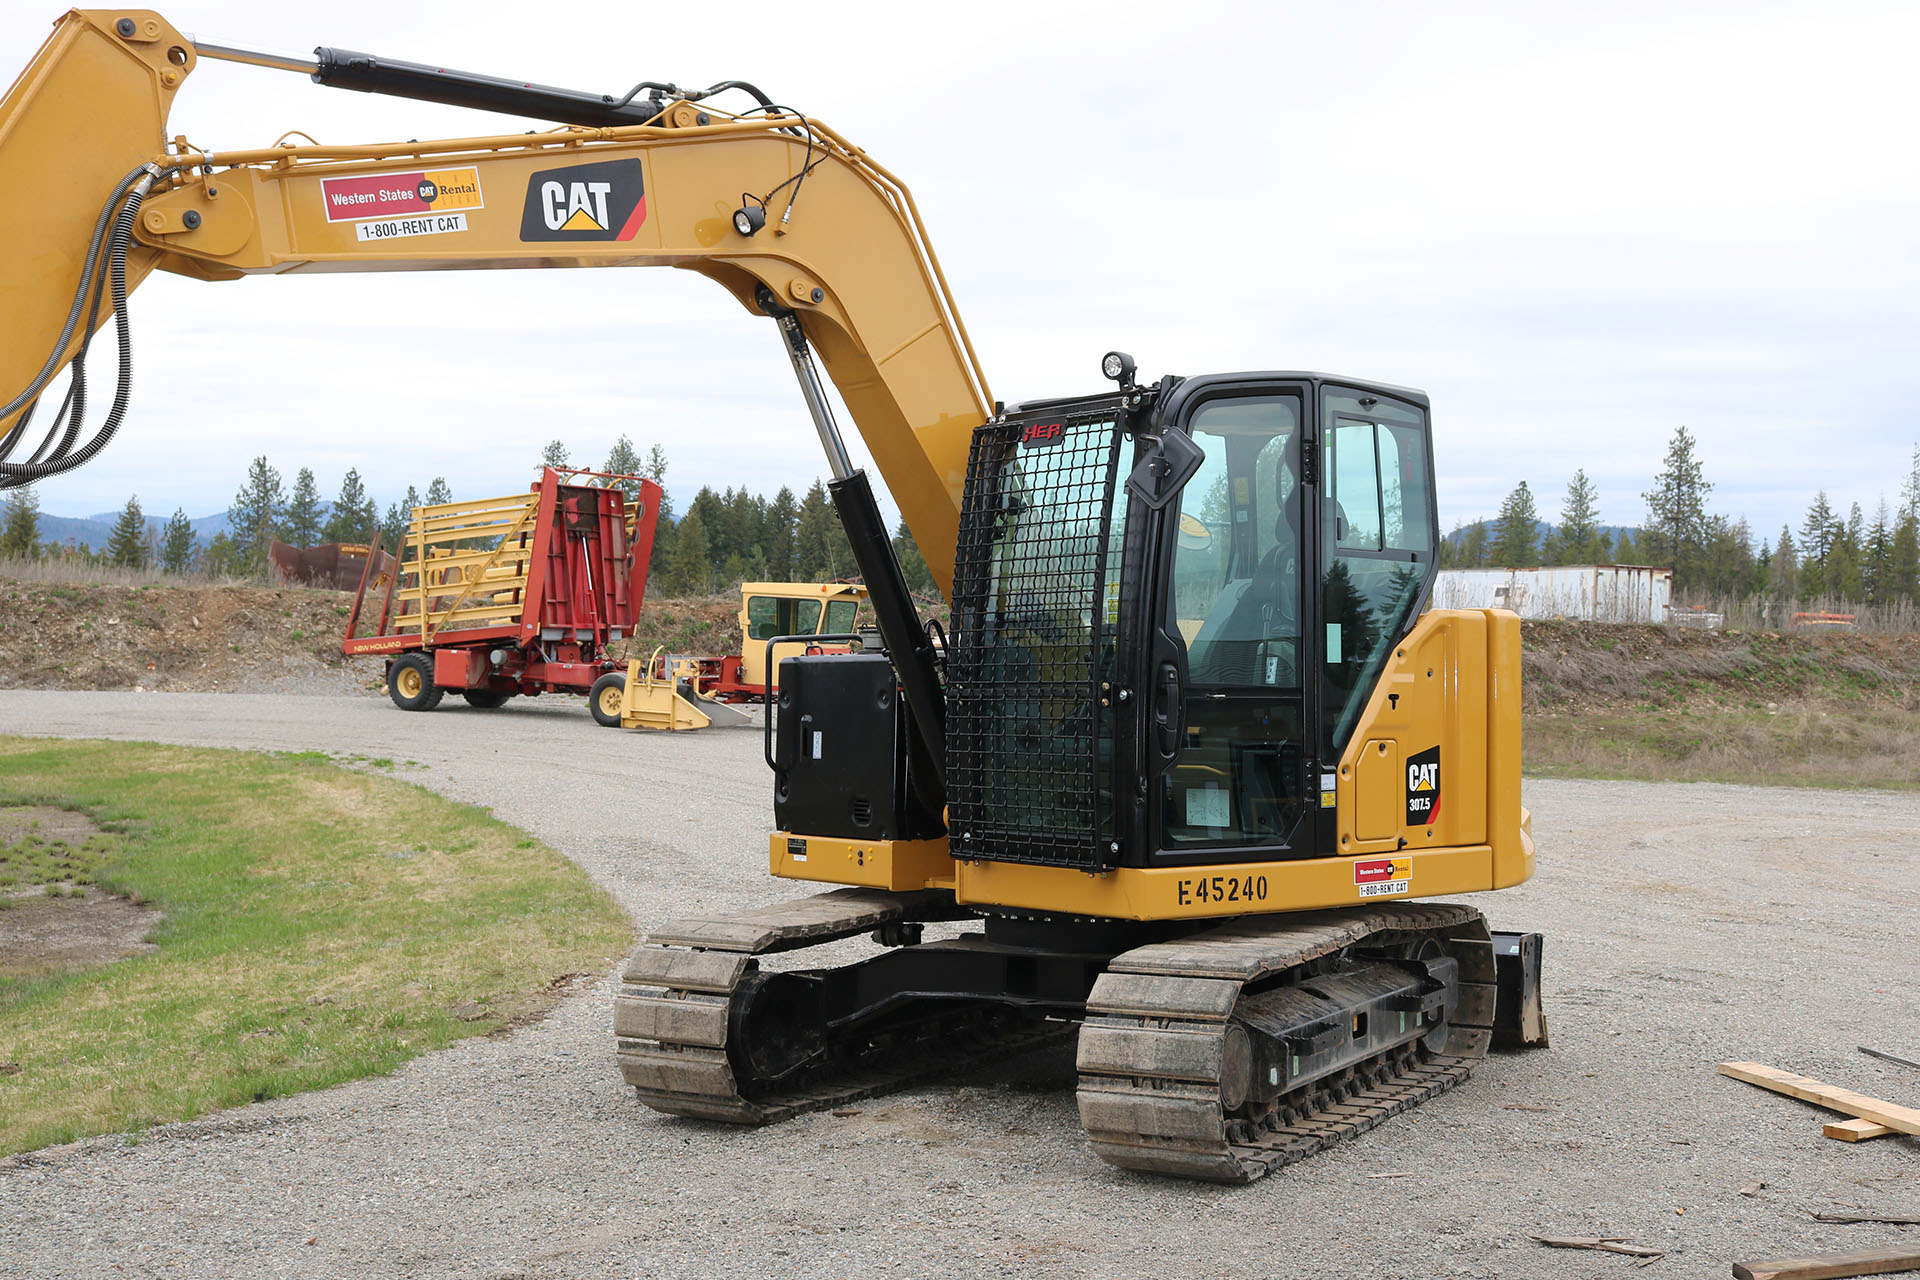 CAT 307.5 Next Gen Bolt on Excavator Guard